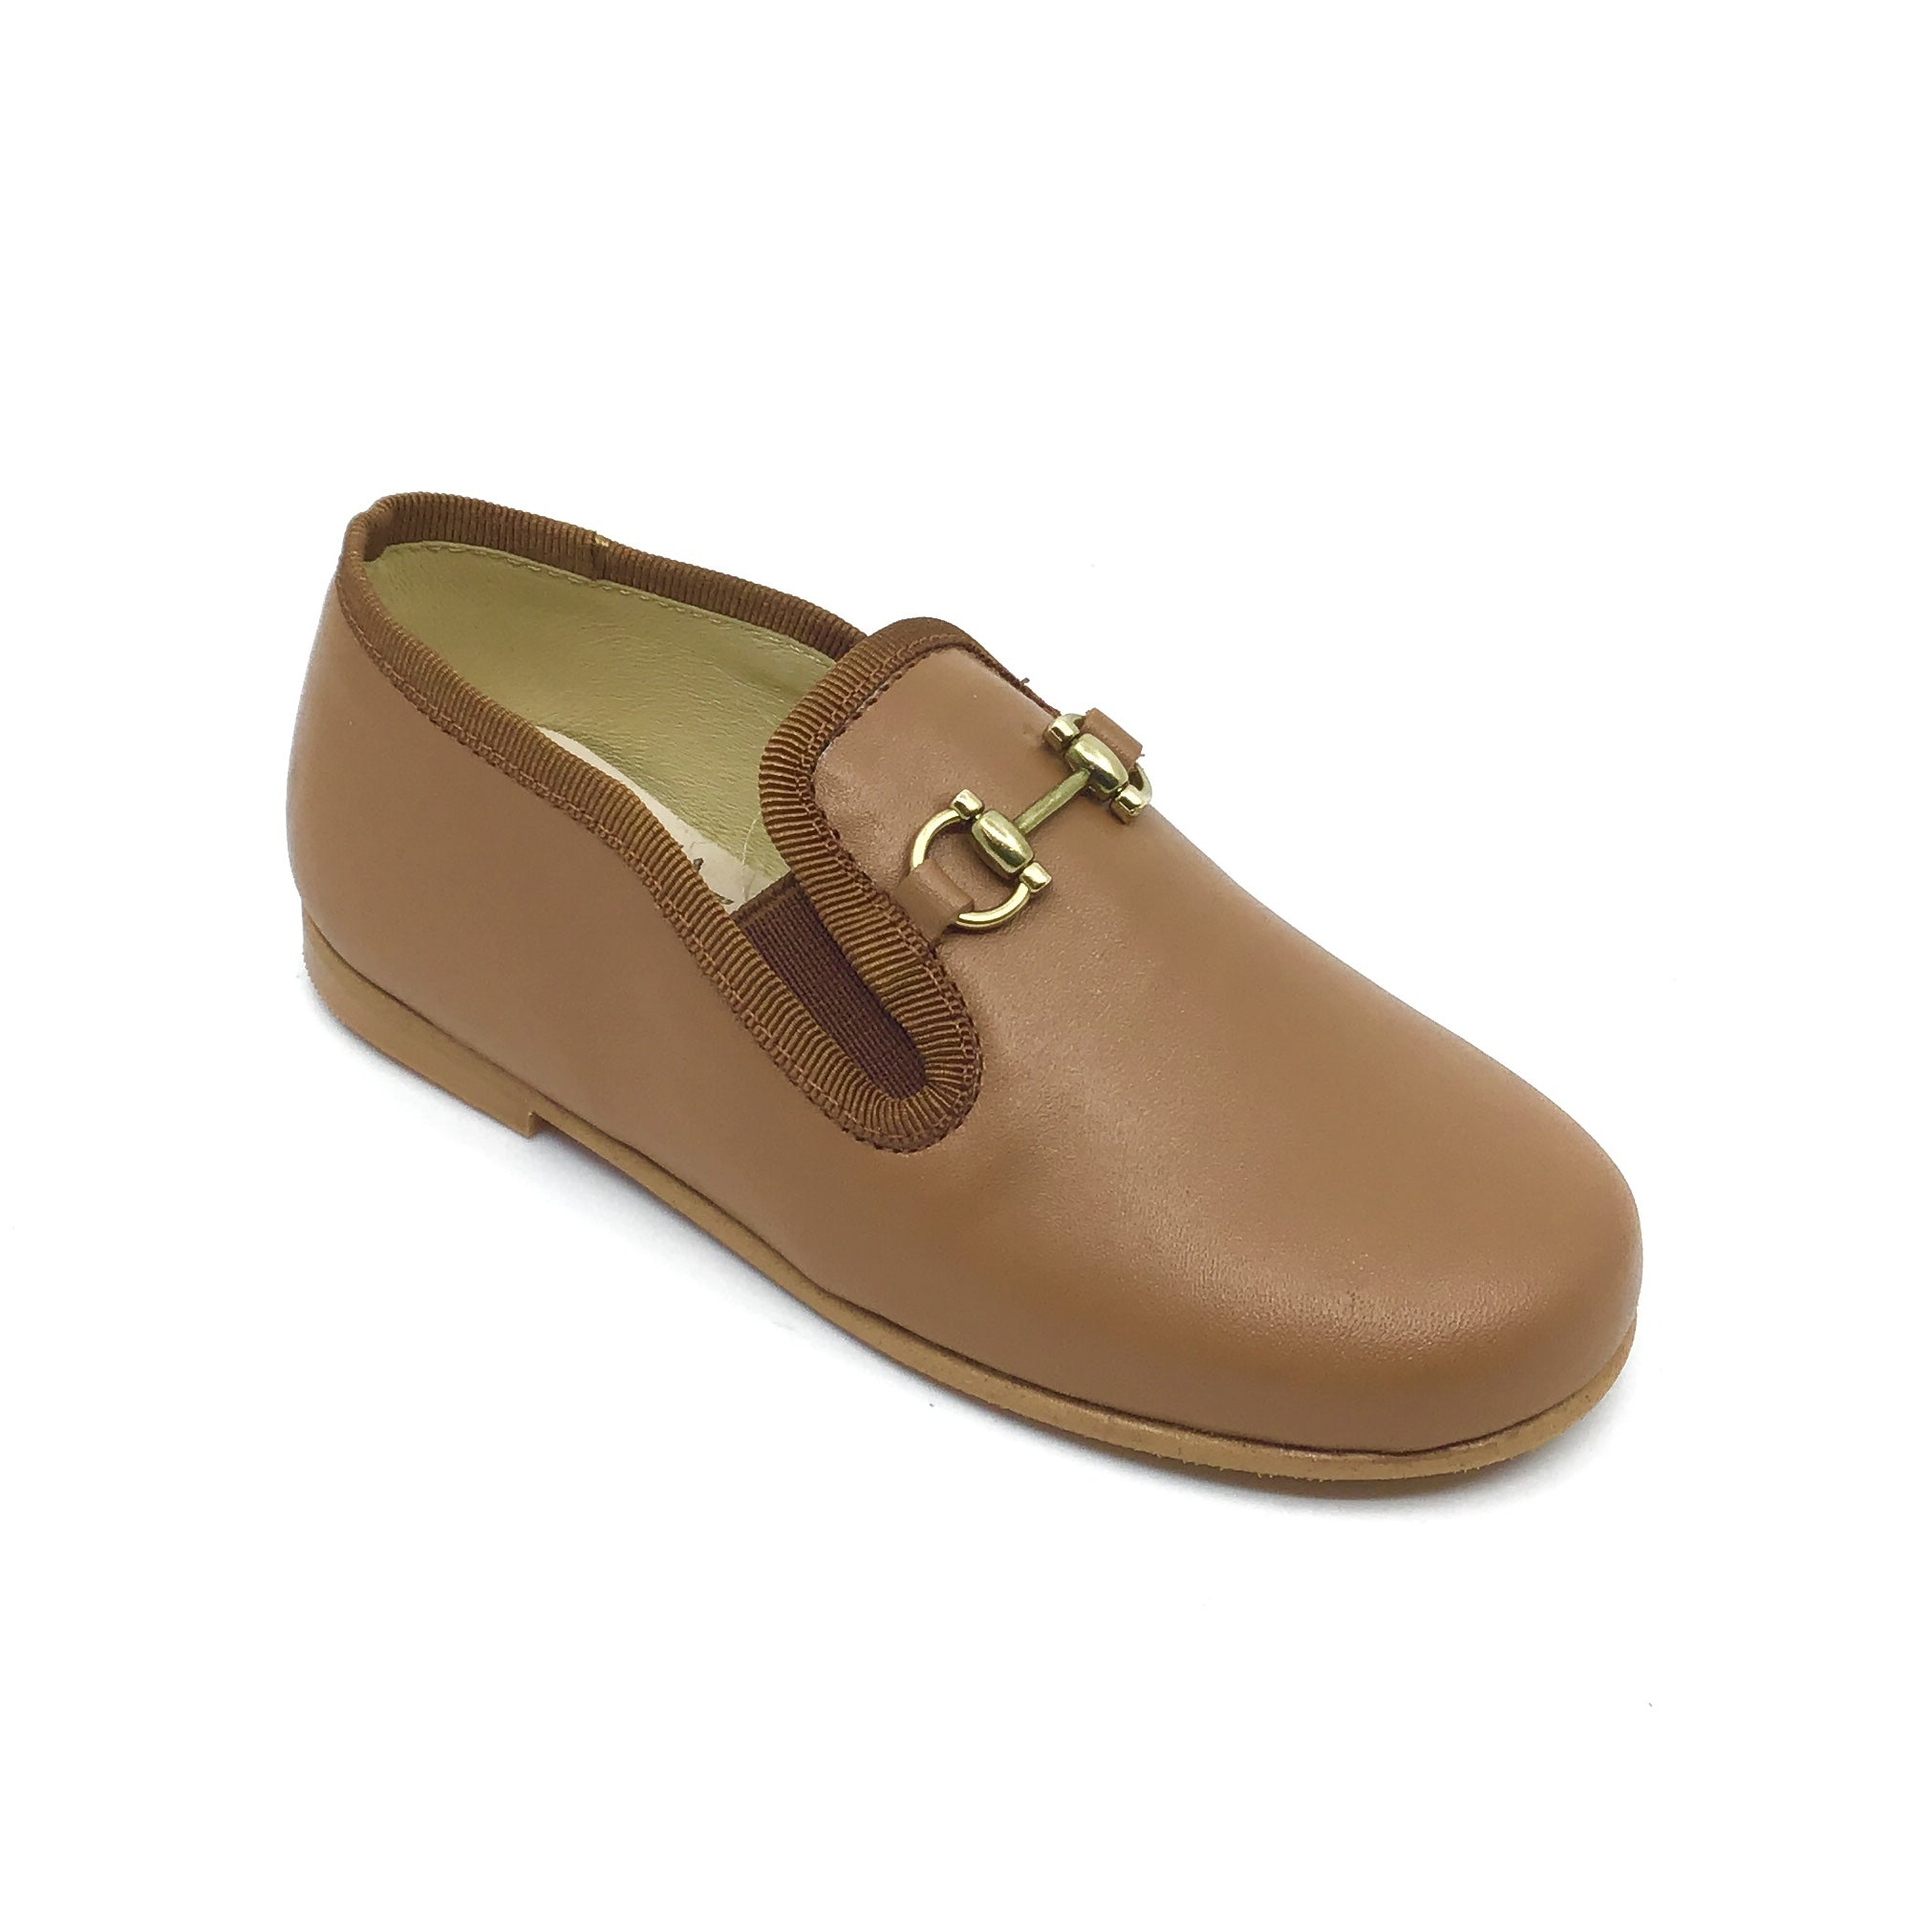 Luccini Brown Loafer with Chain